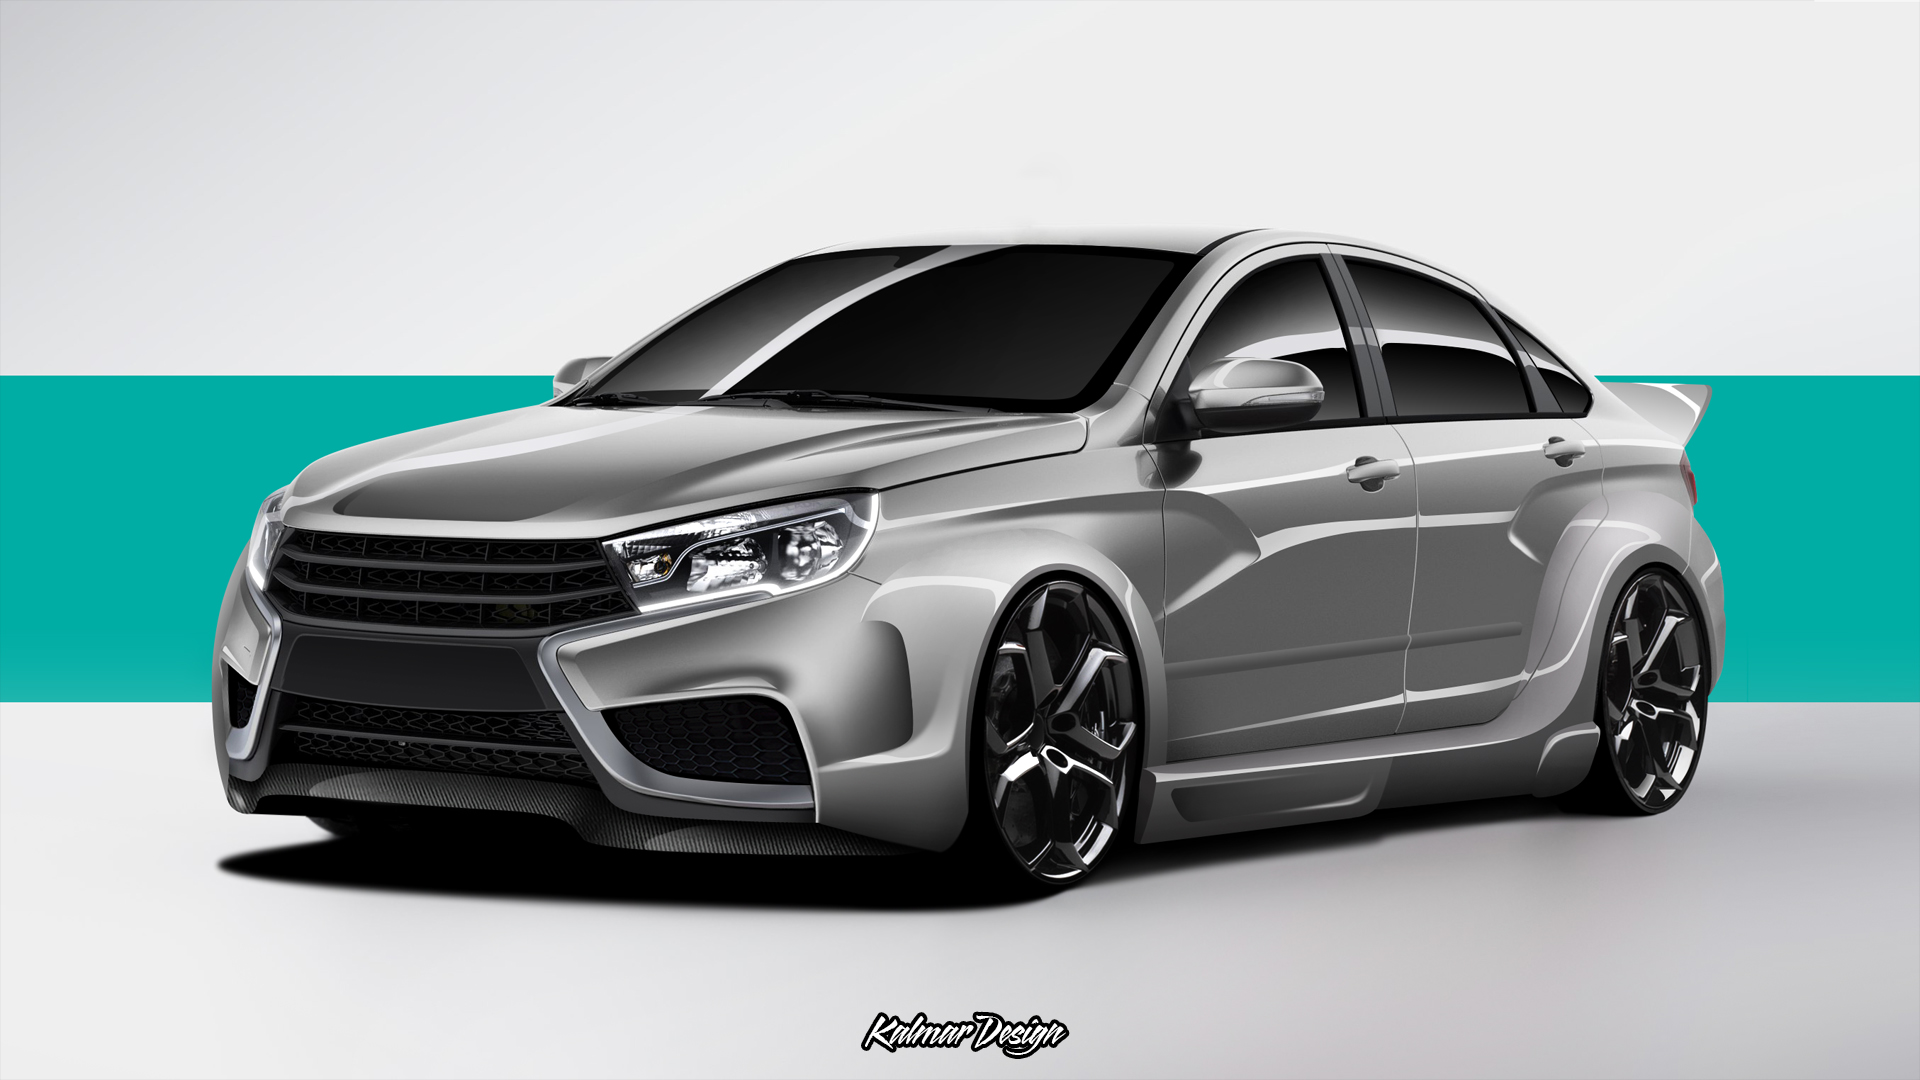 virtual tuning lada vesta by kalmardesign on deviantart